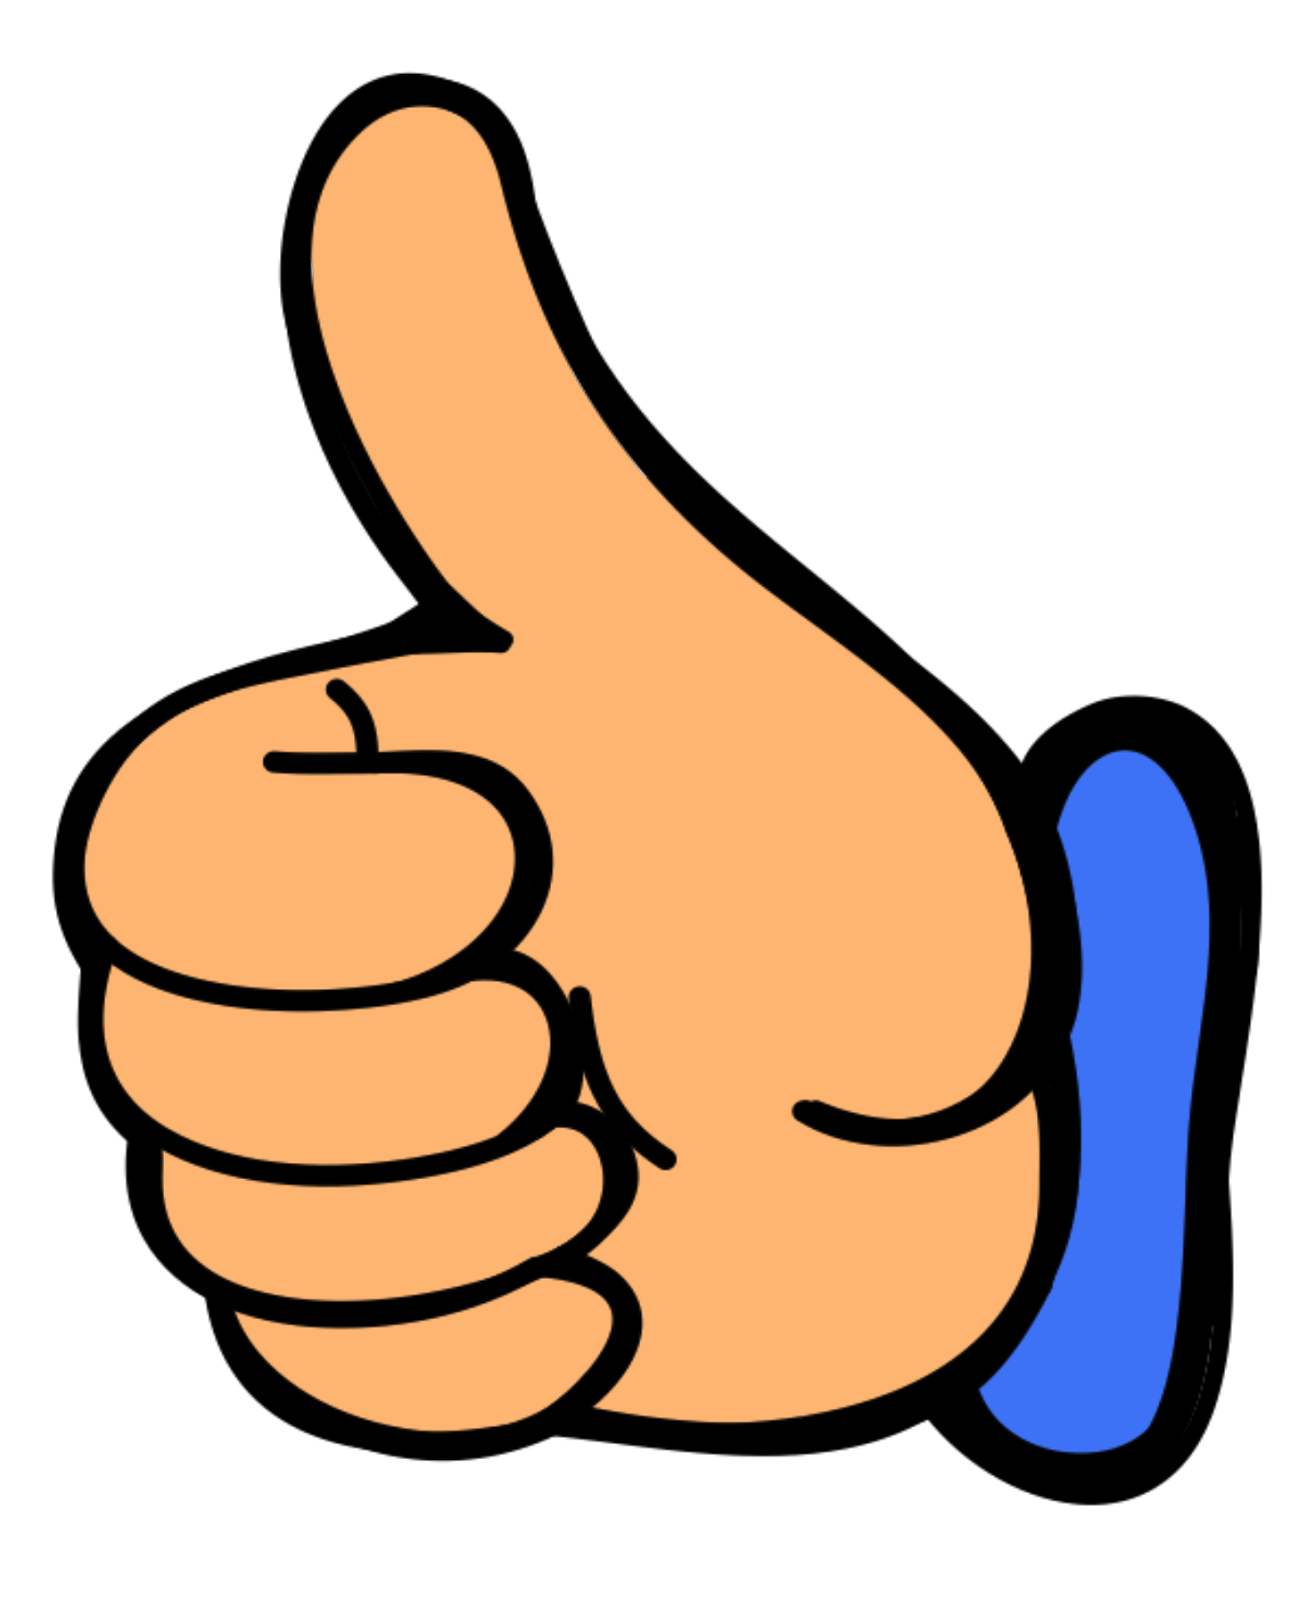 2 thumbs up clipart svg stock Two Thumbs Up Clipart - Clipart Kid svg stock